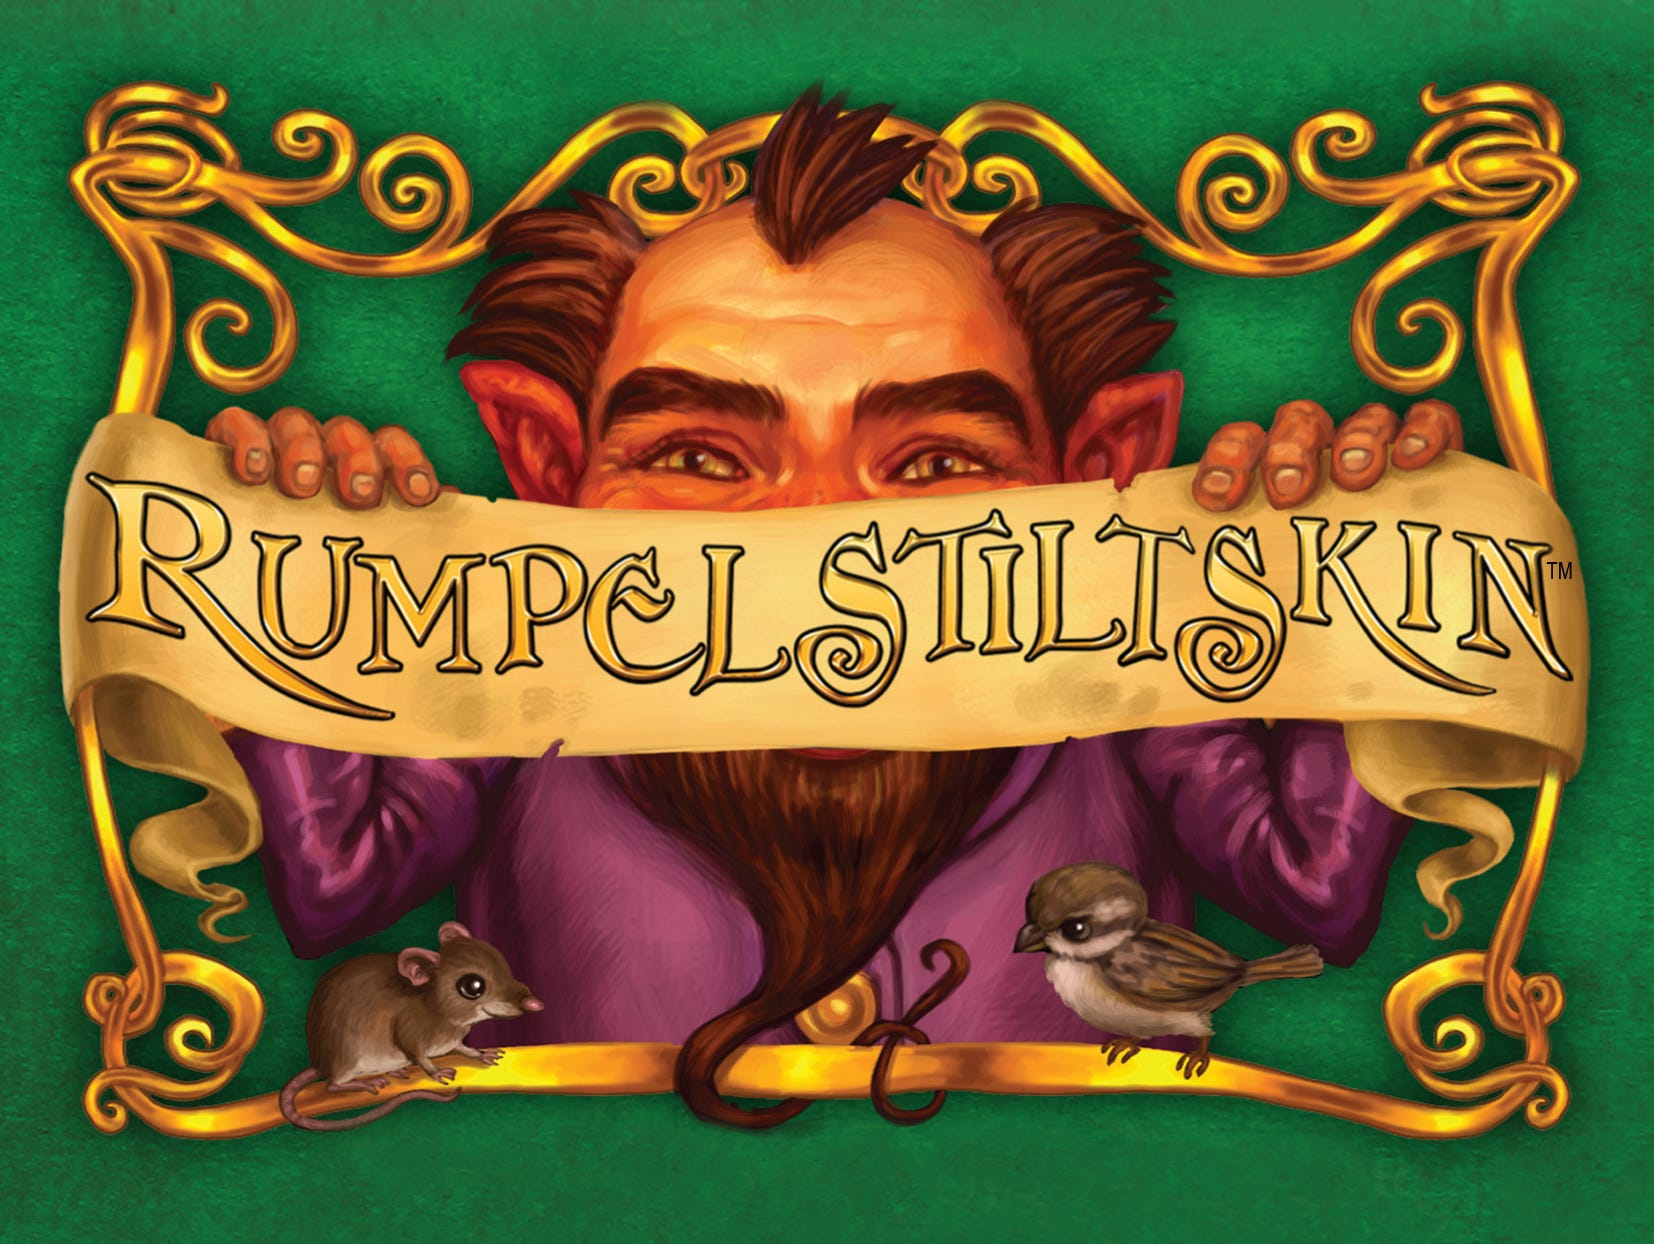 "Insiders get $10 off adult tickets to see ""Rumpelstiltskin"" at Kodak Theatre. 6/8-7/8."